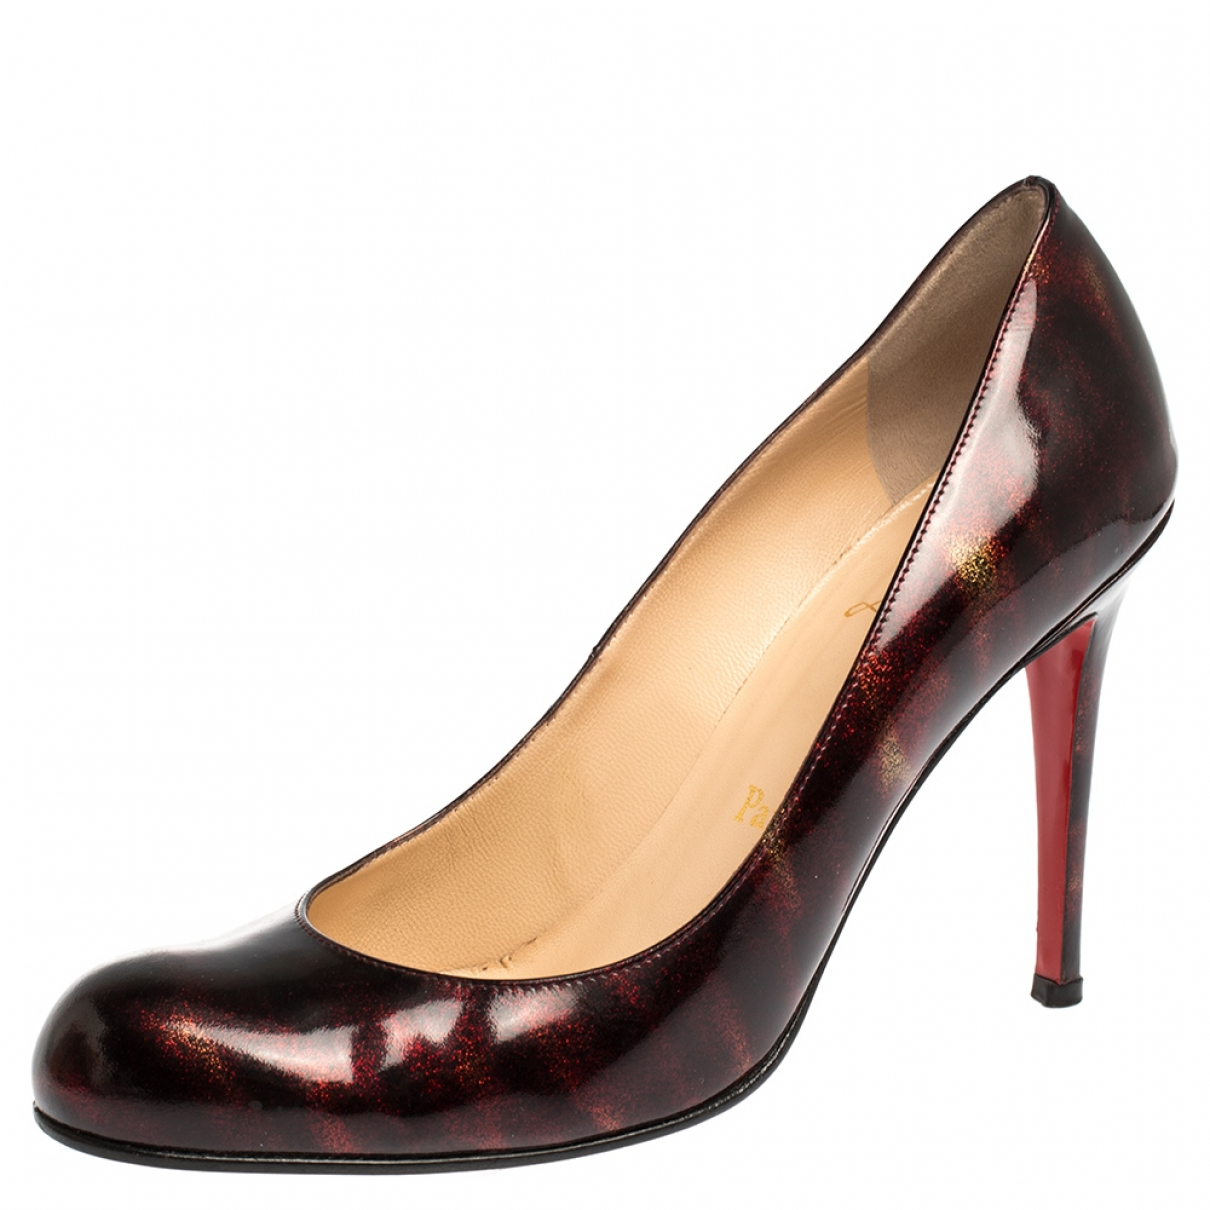 Christian Louboutin Simple pump Burgundy Patent leather Heels for Women 8 US